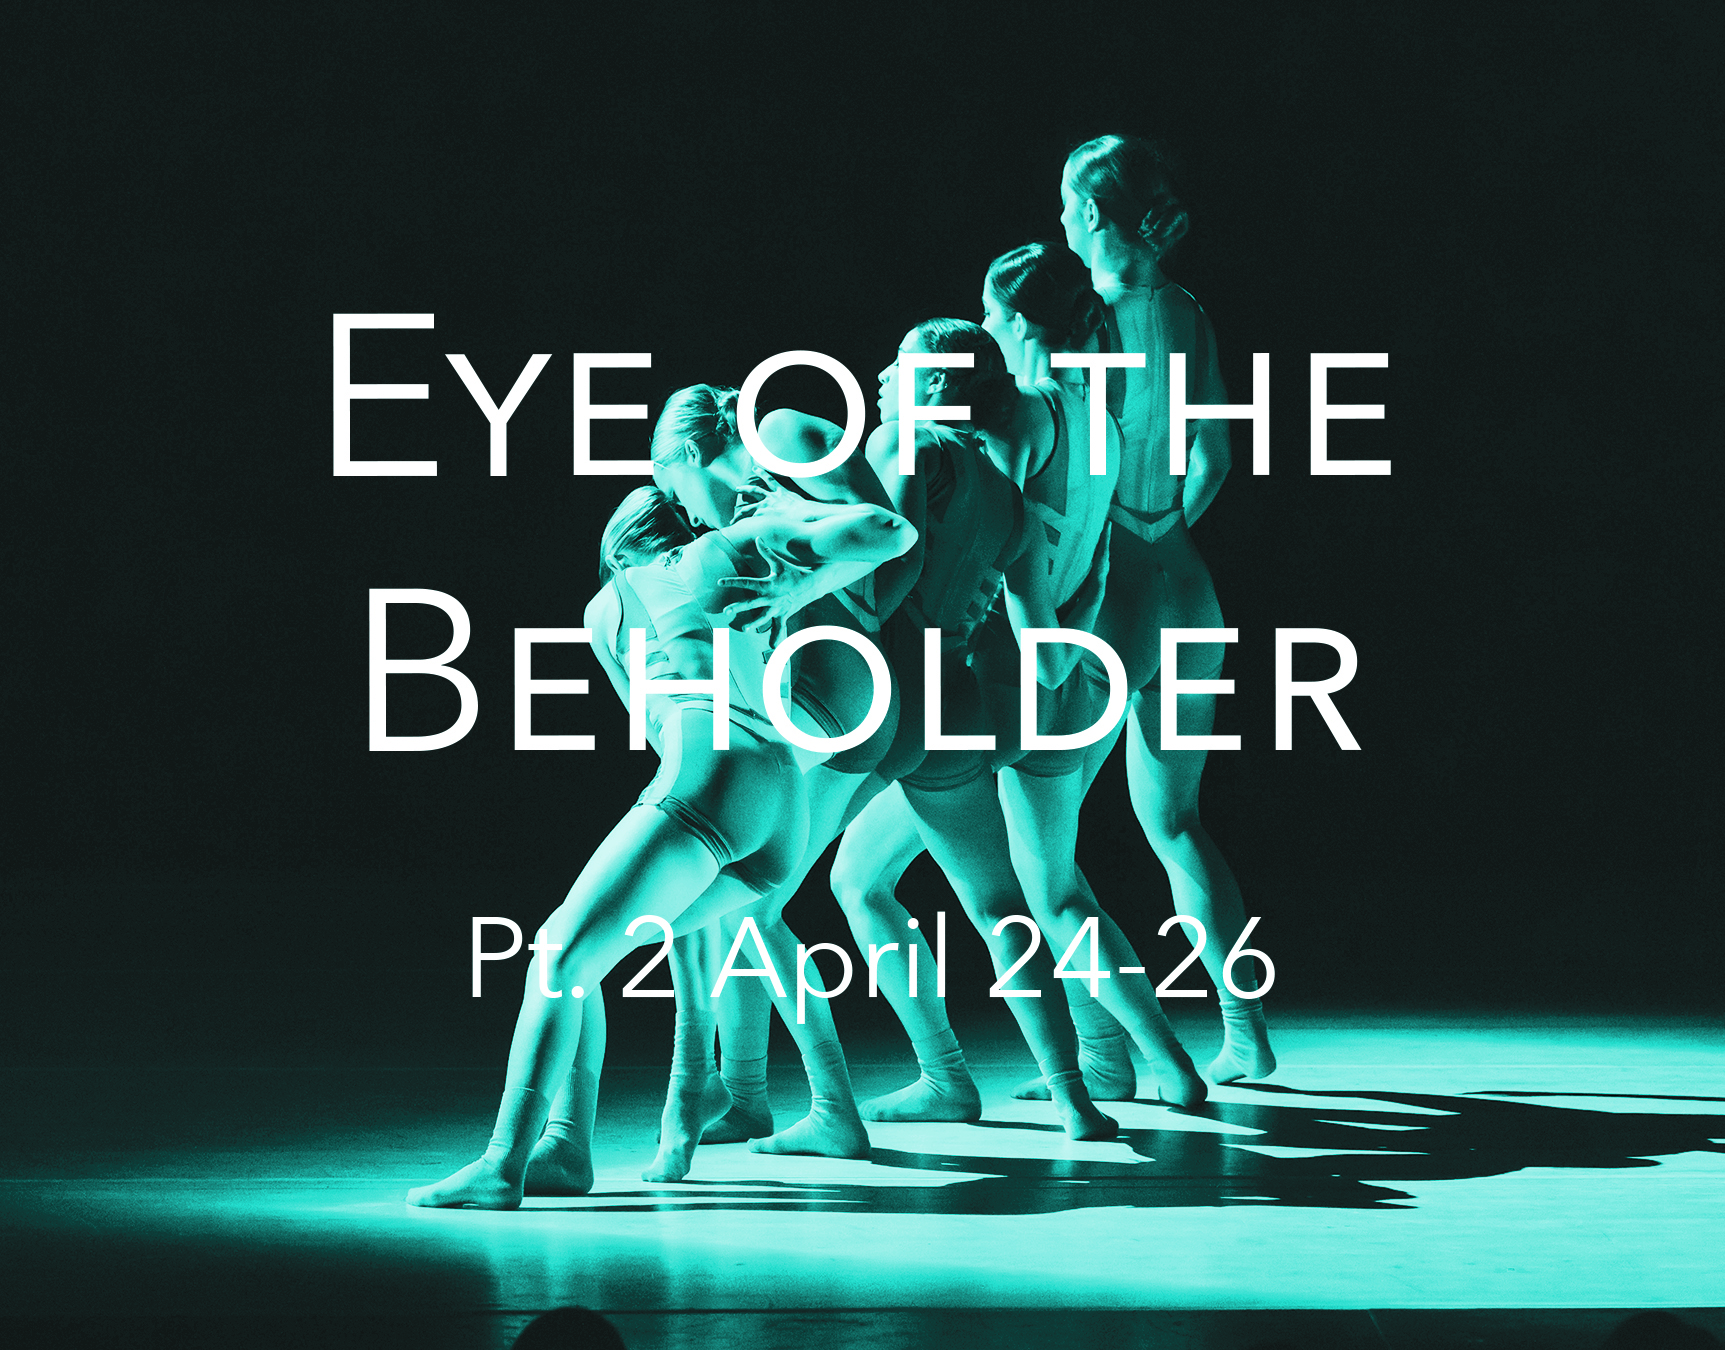 Eye of the Beholder (Pt. 2) - Friday, April 24 | 7:00pmSaturday, April 25 | 7:00pmSunday, April 26 | 3:00pmCould the innate definition of truth and justice lie solely in the eye of the beholder? Join EDD Artistic Director, Stephanie Pizzo, and the acclaimed EDD dancers as they investigate perspective...how it shapes judgment and impacts culture and society. This two-part, site-specific work, at two uniquely different venues, Oakland University's Varner Recital Hall and the Light Box in Detroit, reimagines what we think of as performance space. Watch contemporary dance transform both environments to create two unique perspectives with a common theme. Join in the artistic process for an interactive experience that will impact the perspective of Part 2 at the Light Box. The program also features the mesmerizing premieres of dances created by renowned choreographers, Christian Denice and Baira.Light Box8641 Linwood St, Detroit, MI 48206